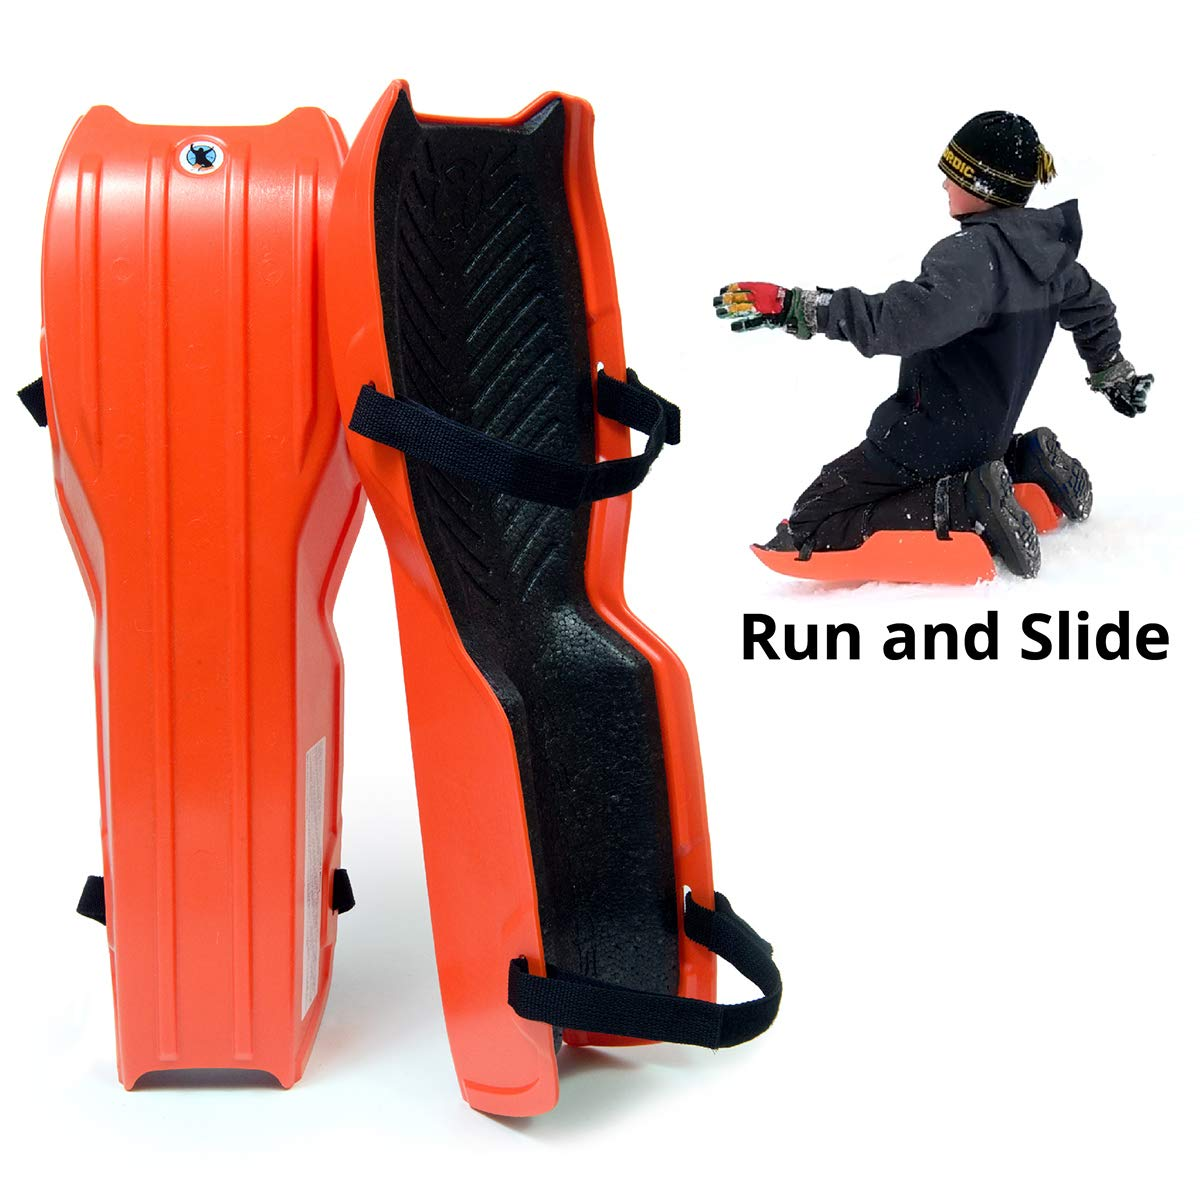 Sled Legs Wearable Snow Sleds - Fun Winter Accessories with Leg Support - Family Friendly Winter Activities - Exciting Winter Fun in The Snow (Hot Orange, Small) ... by Sled Legs